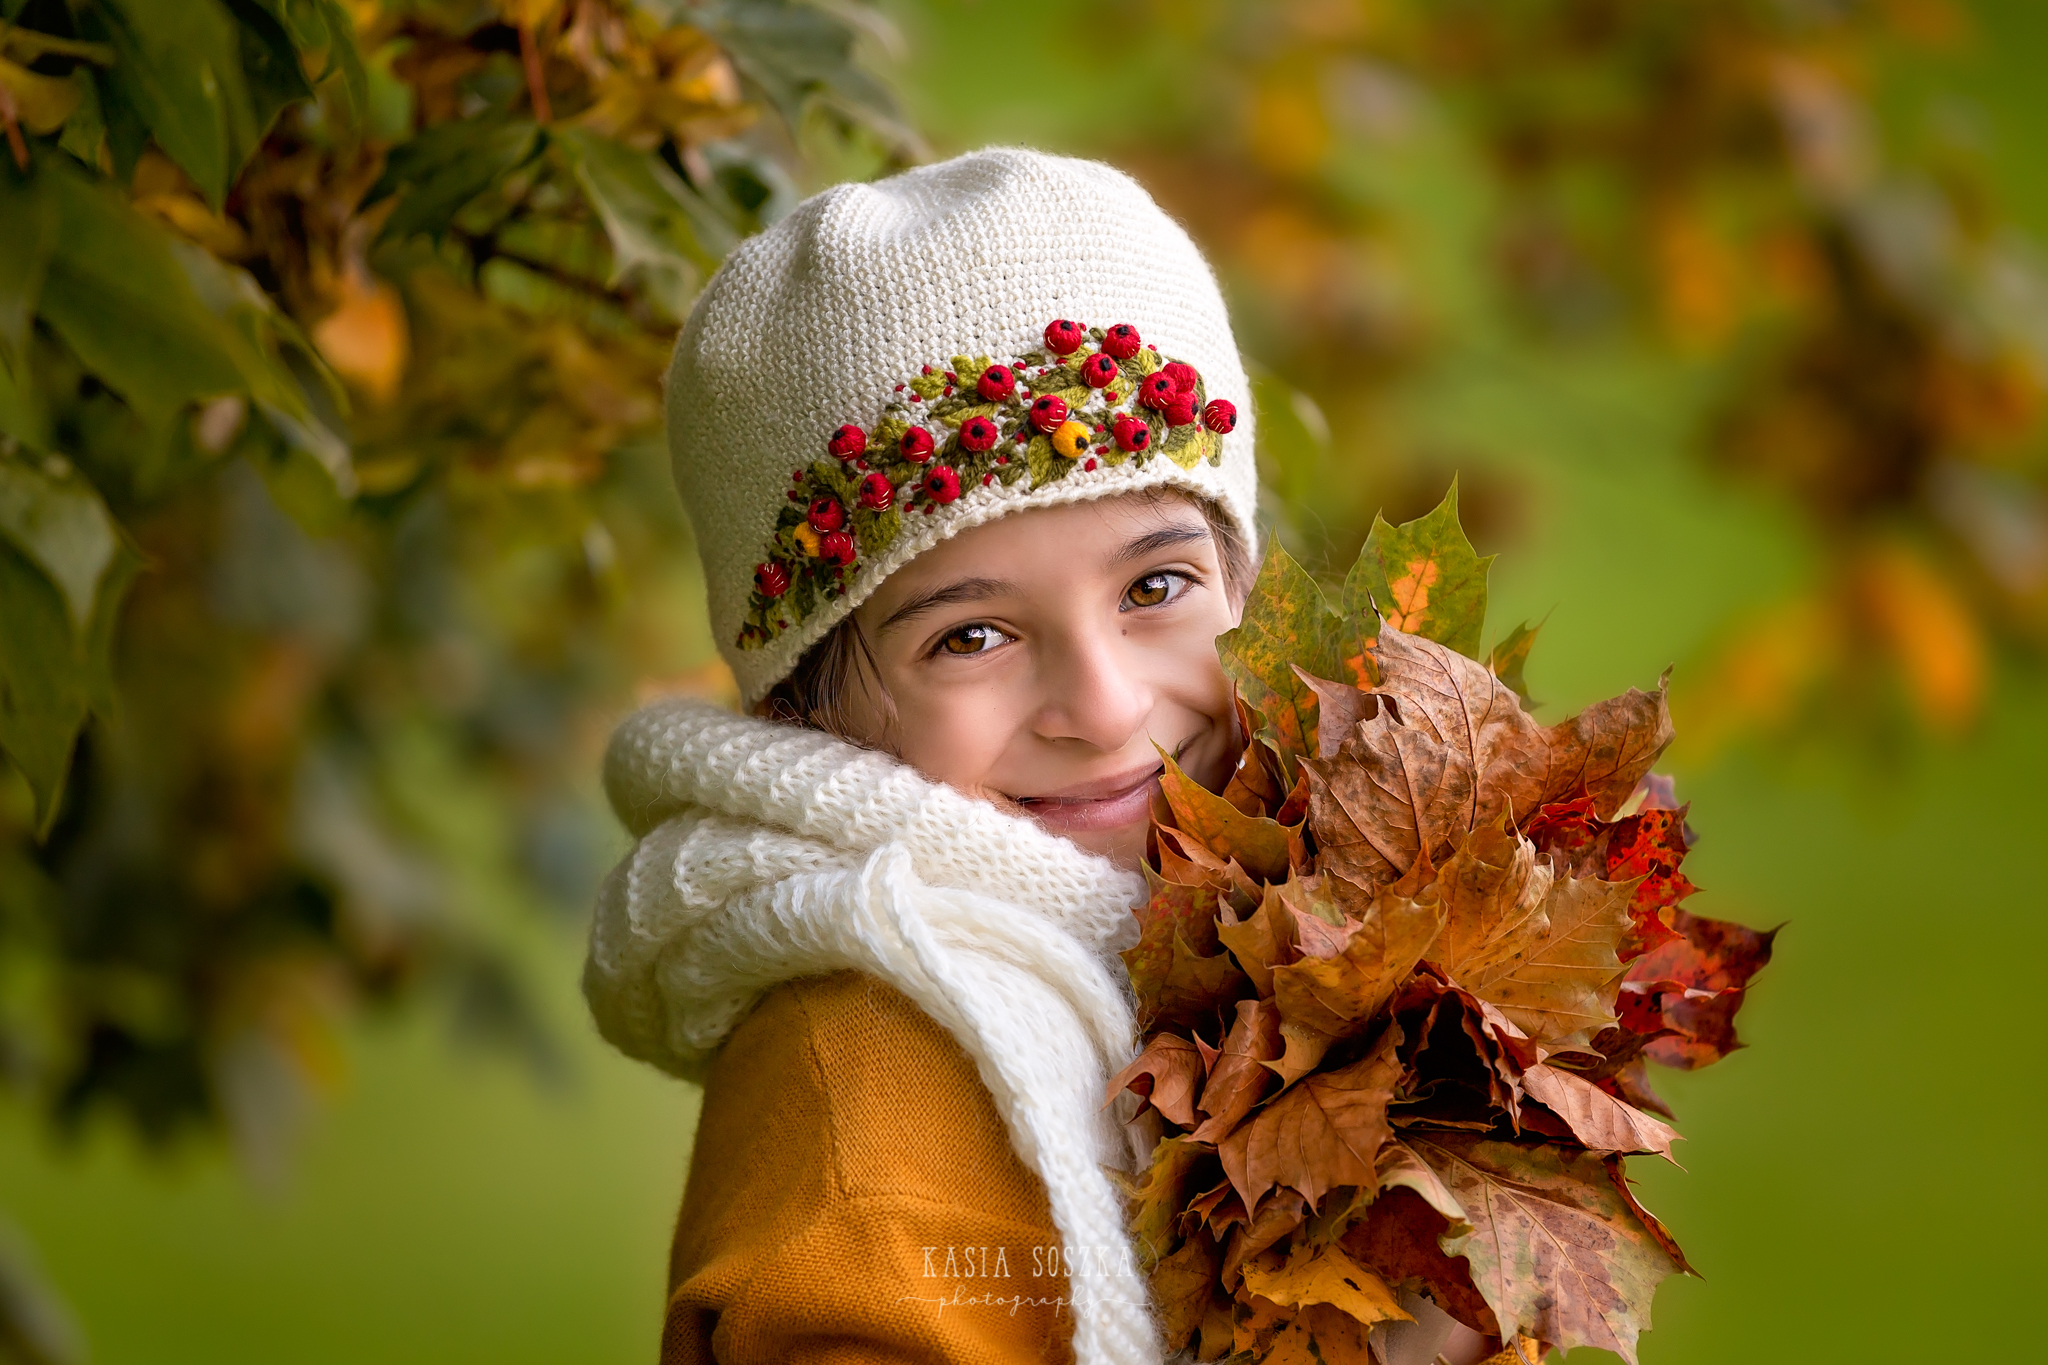 Child photography Leeds, York, Bradford, Harrogate: little girl with autumn leaves. Child outdoor autumn session in Leeds, Yorkshire